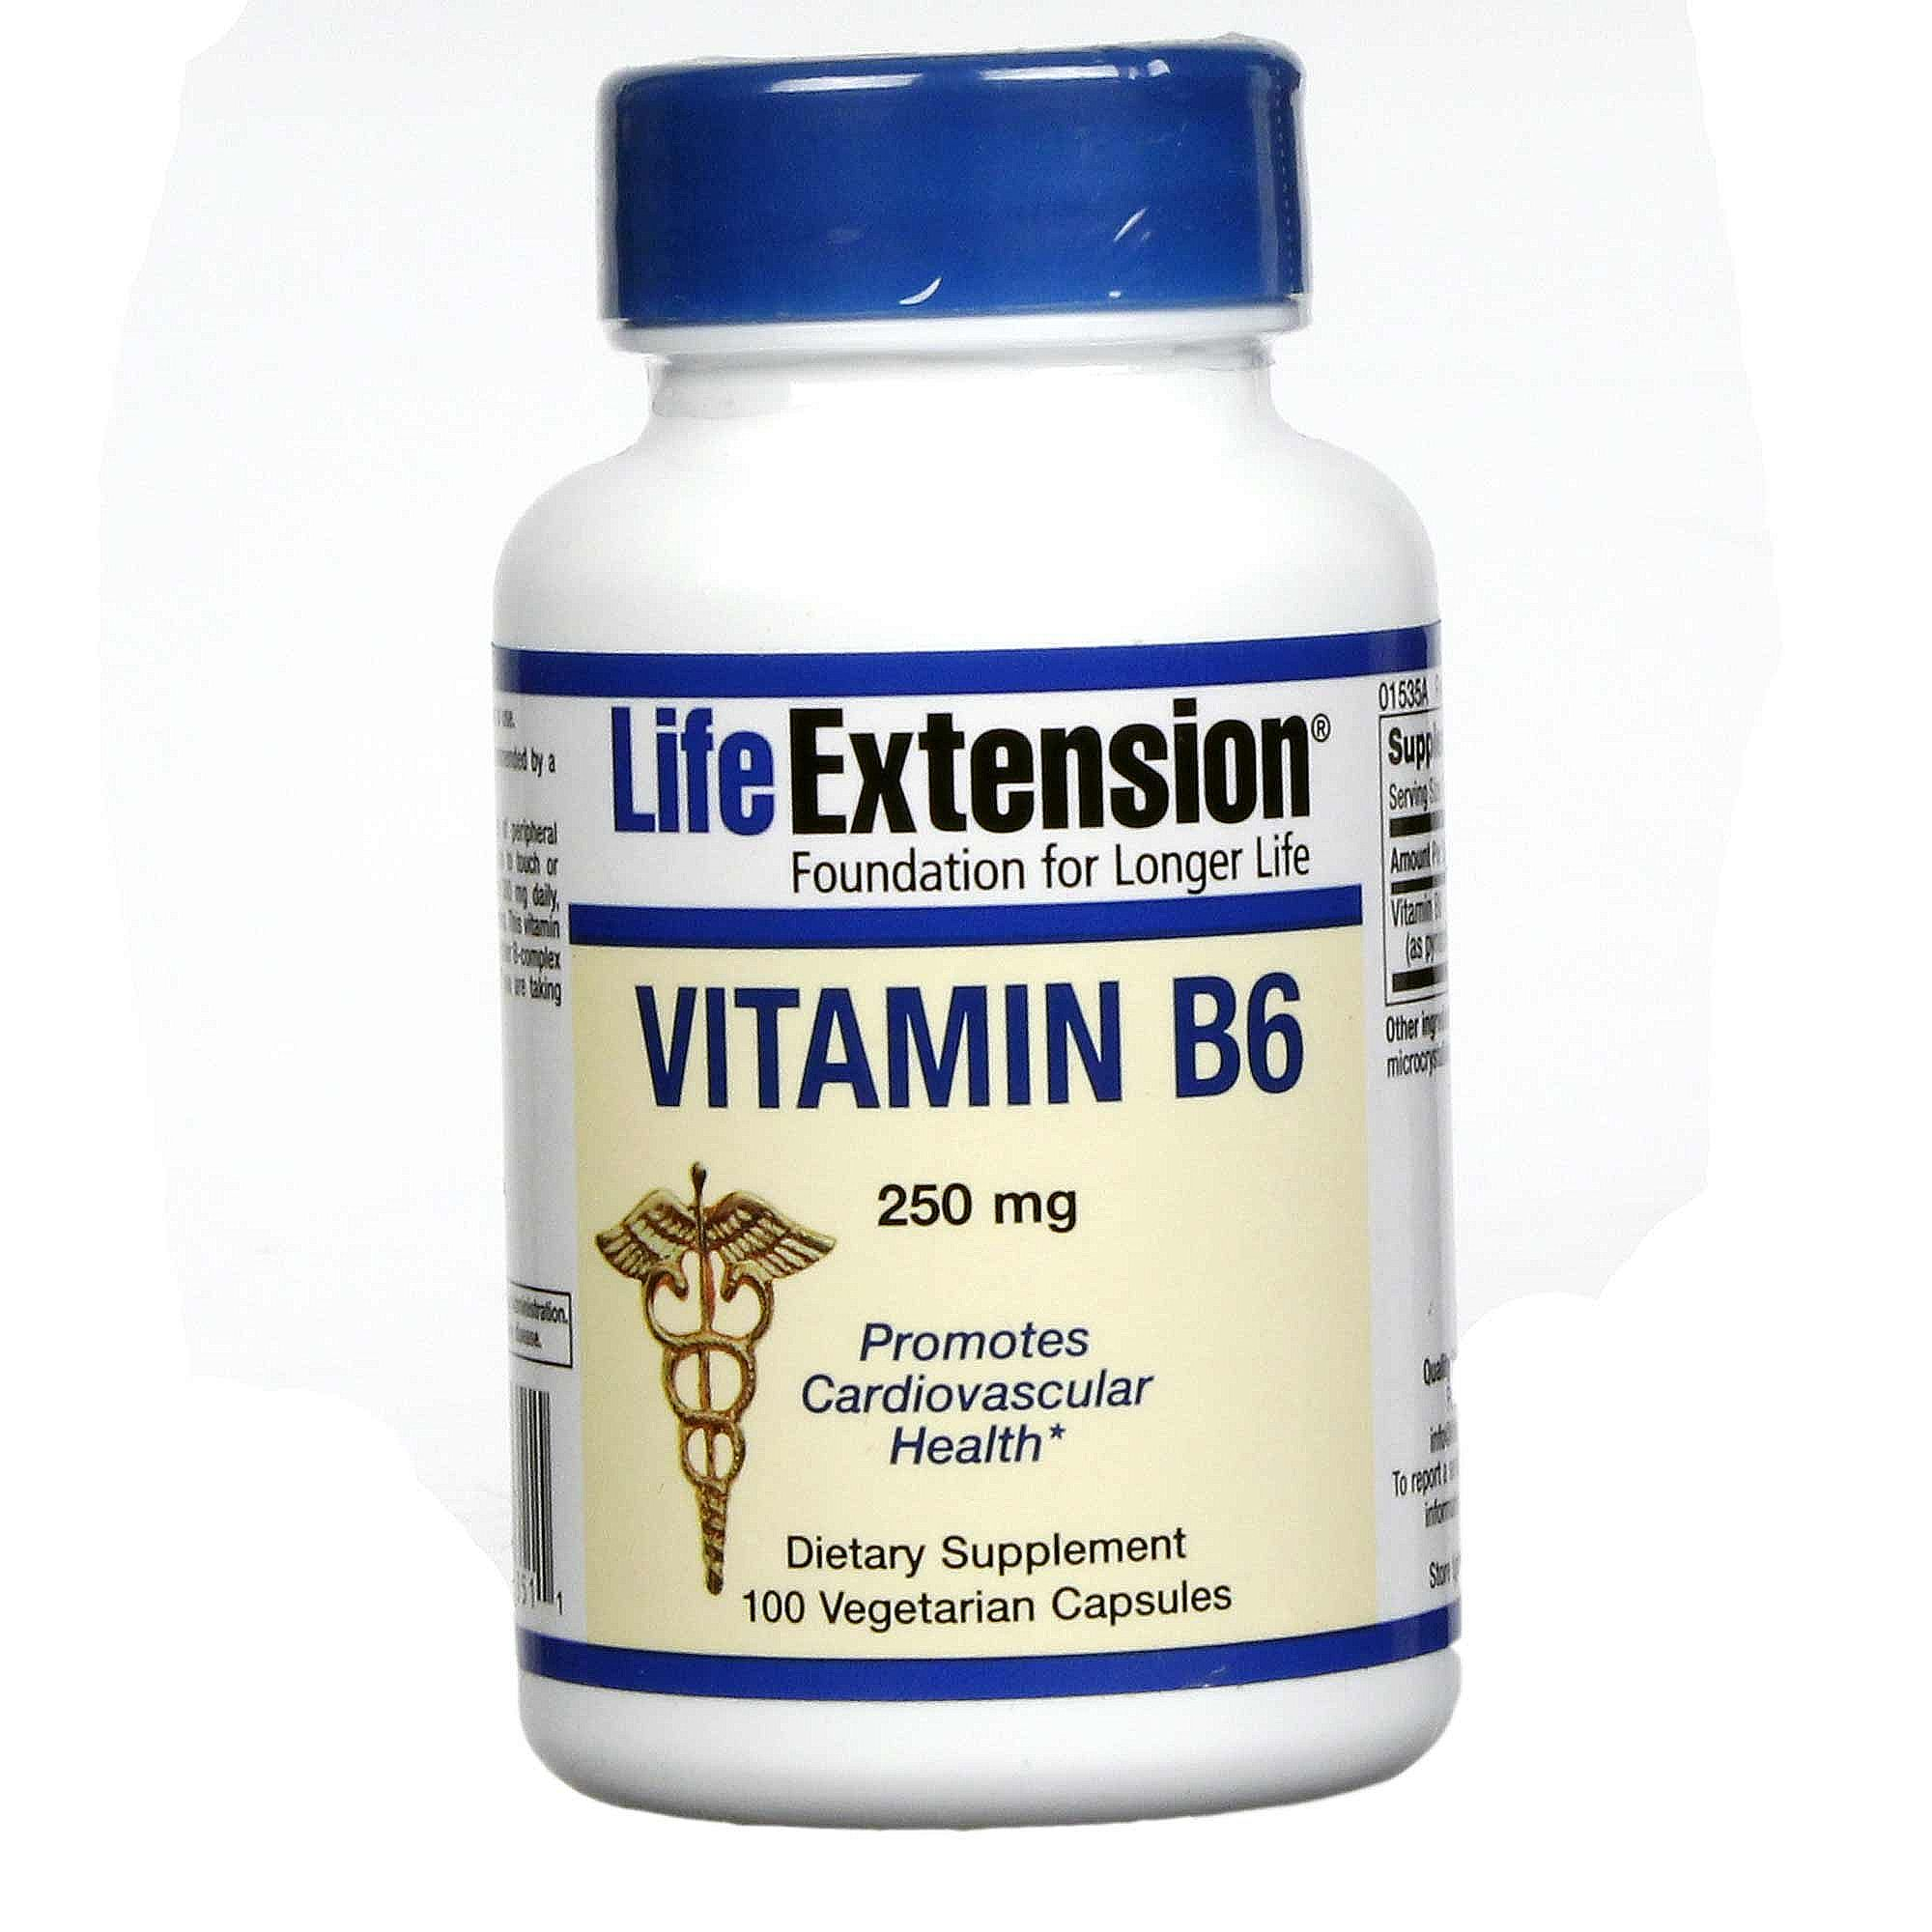 Life Extension vitamins from DR Vitamin Solutions. We offer the complete line of life extension supplements with latest formulations and longest expiration dates. Ships direct from Life Extension. Use coupon code save15 to save an extra 15% off. Earn 5% in cash back with every order.